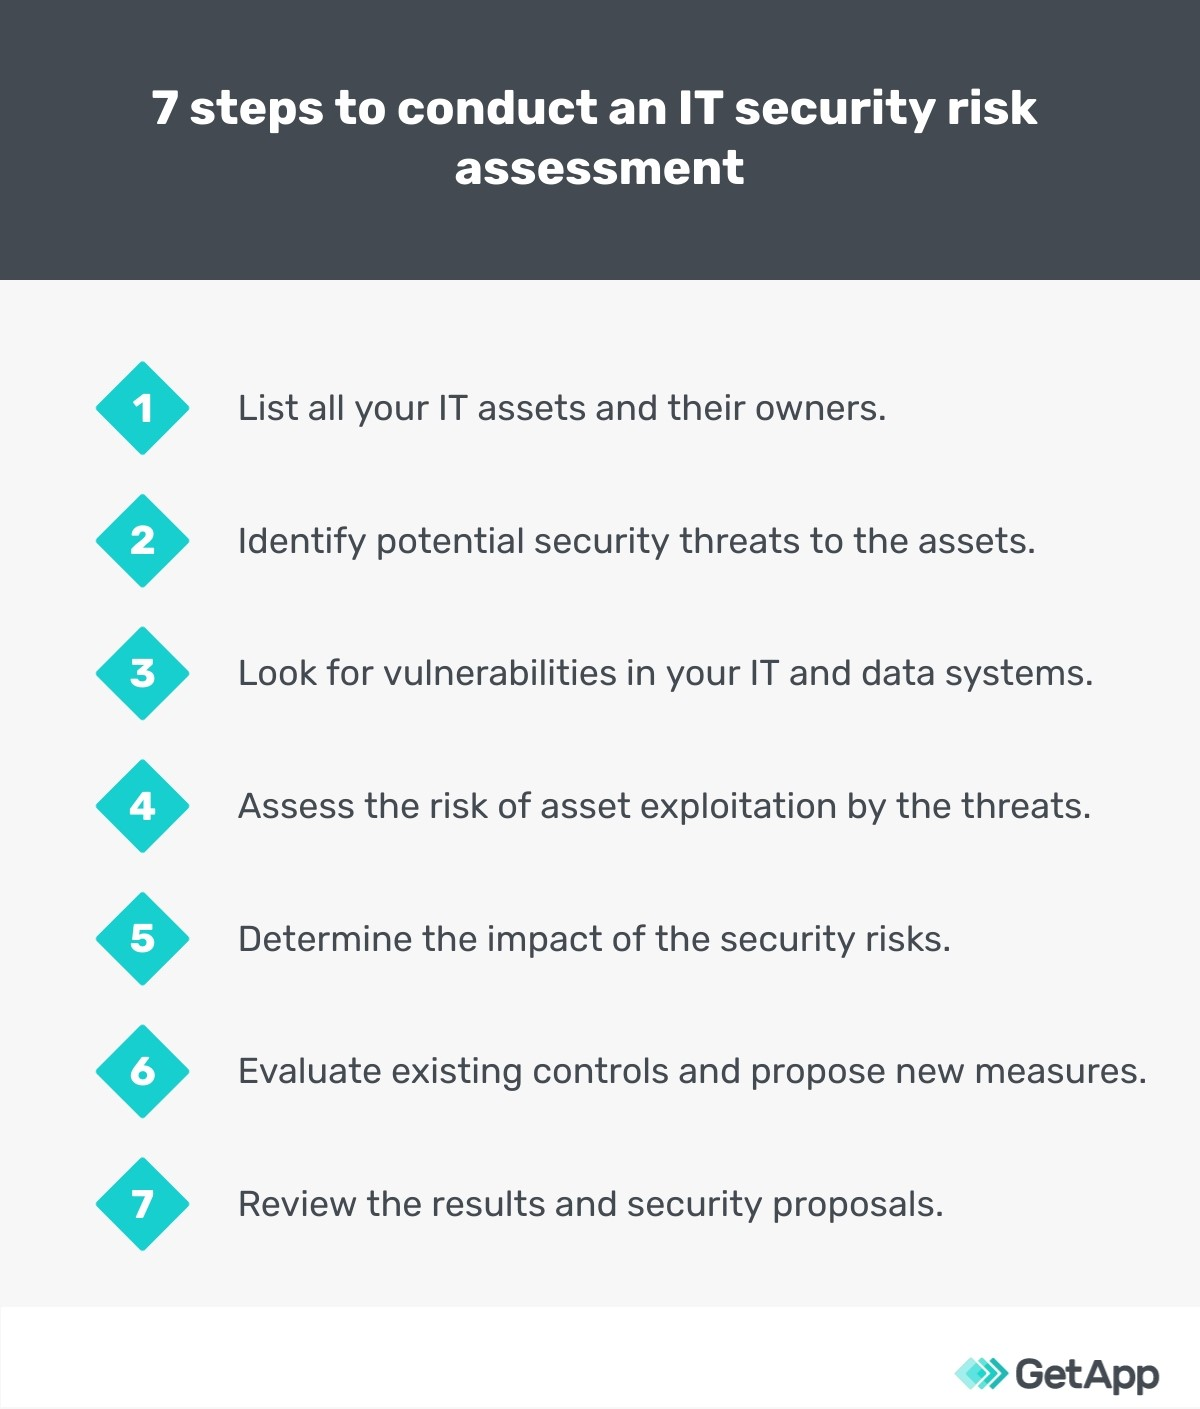 7 steps to conduct an IT security assessment